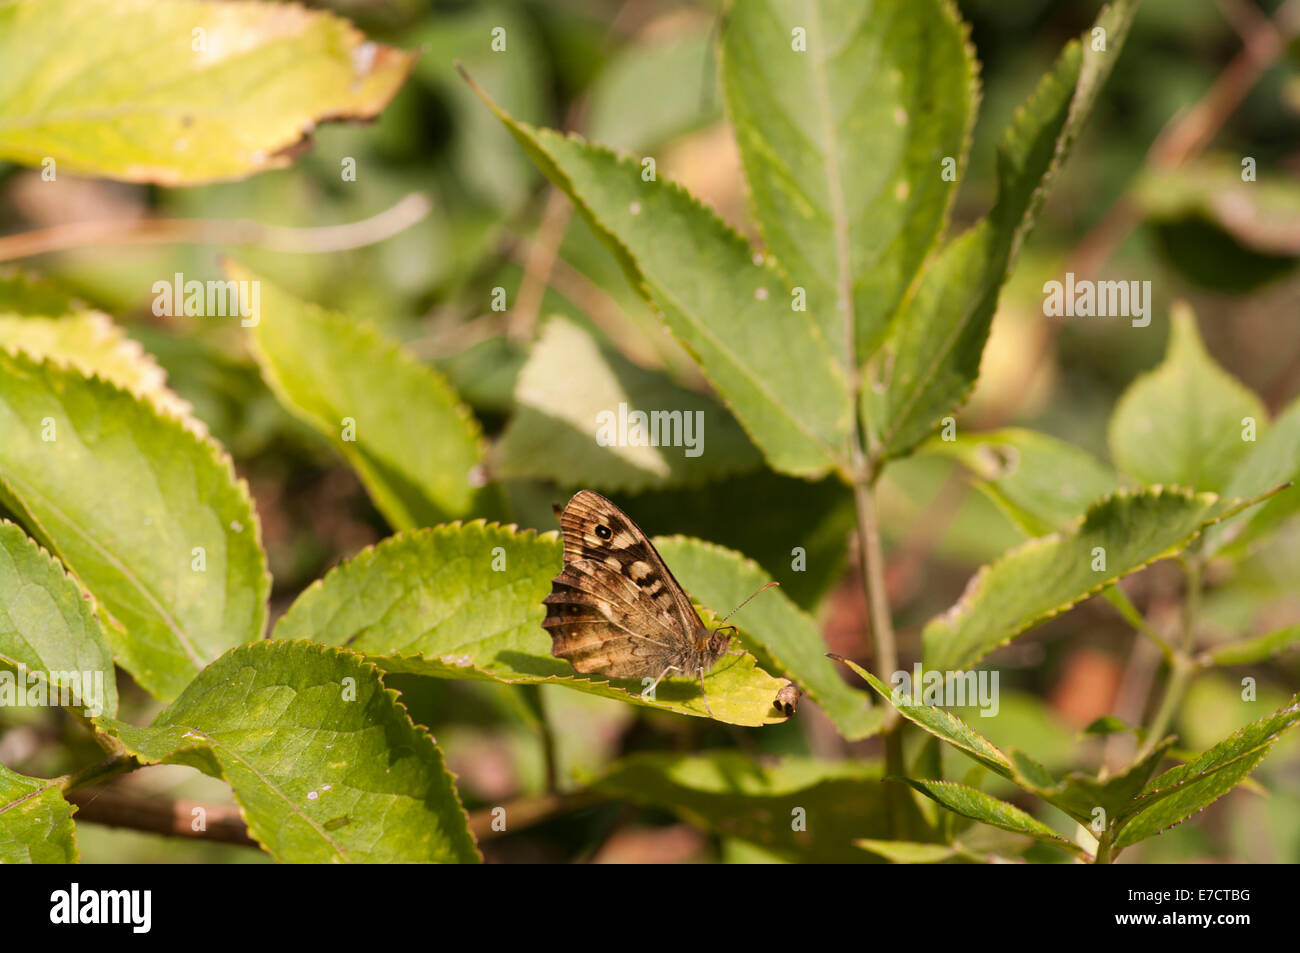 The Speckled Wood Butterfly Pararge Aegeria british Butterflies - Stock Image